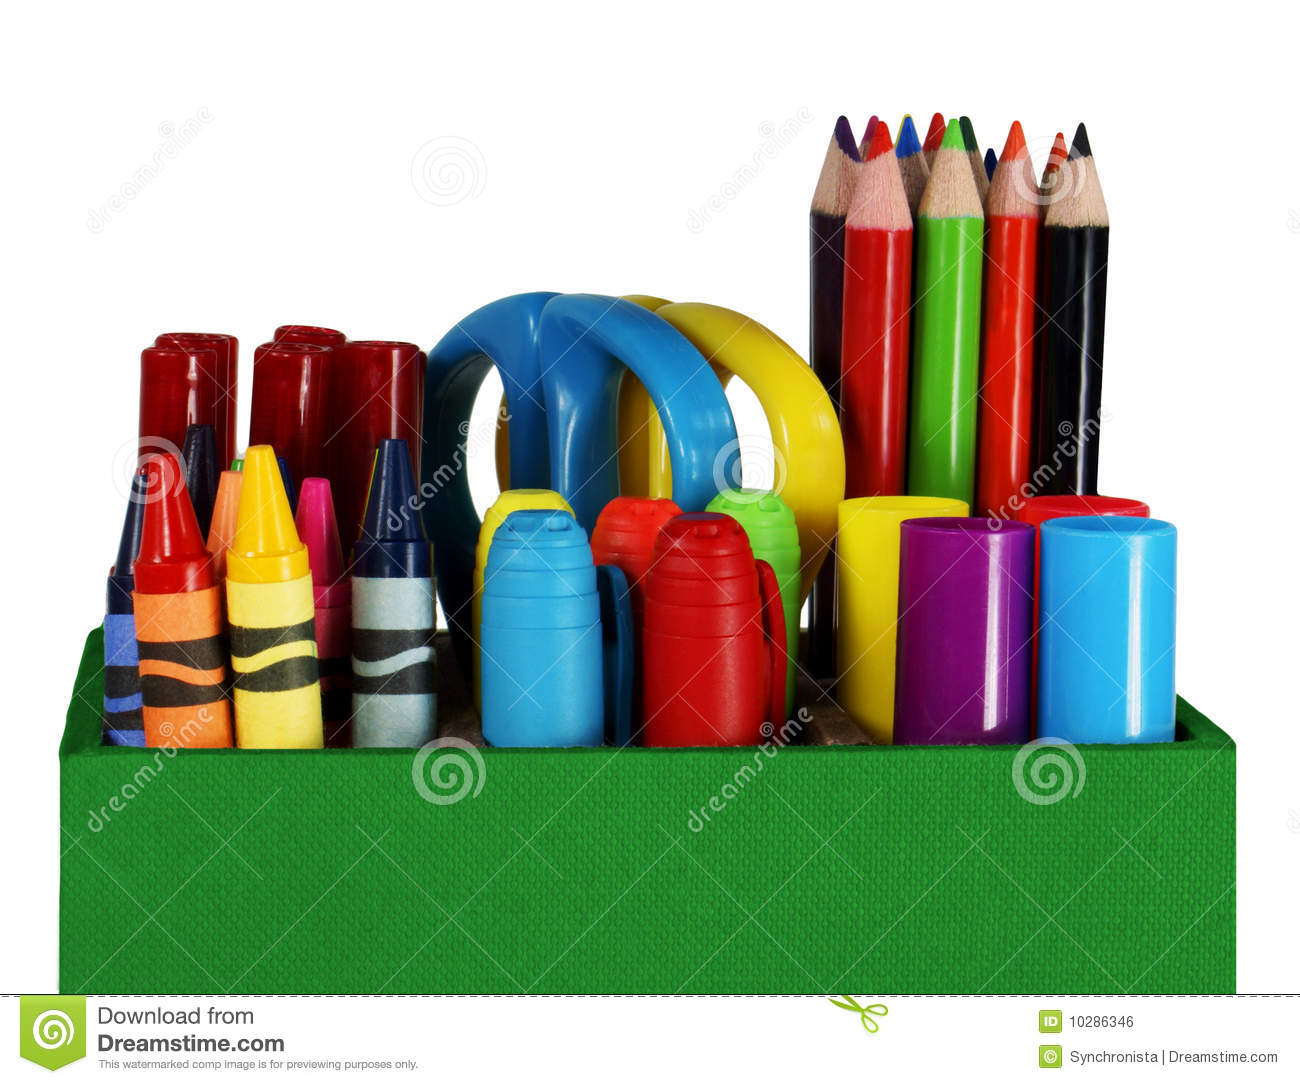 Crayons, Colored Pencils And Pens Stock Photo - Image of ...Crayon Markers Clipart